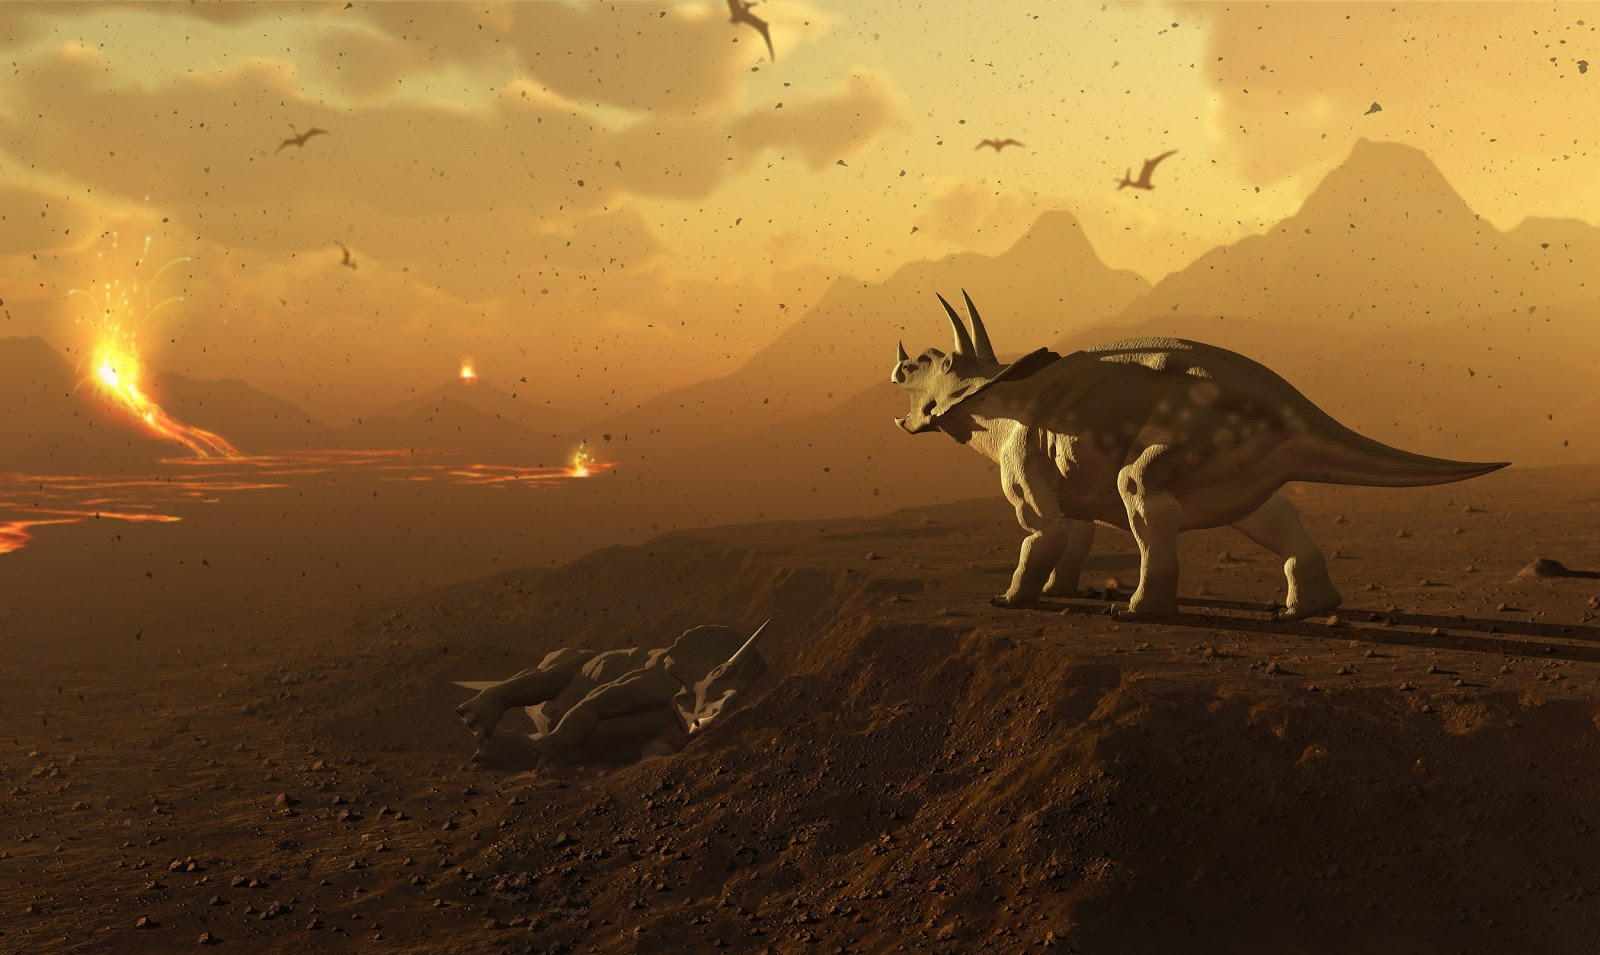 dinosaur extinction essay Extinction of dinosaurs by jenn collins, meghan mccurdy, & jen bayer questions to consider name the theories outlining the dinosaur extinction how long ago did the asteroid hit the earth.